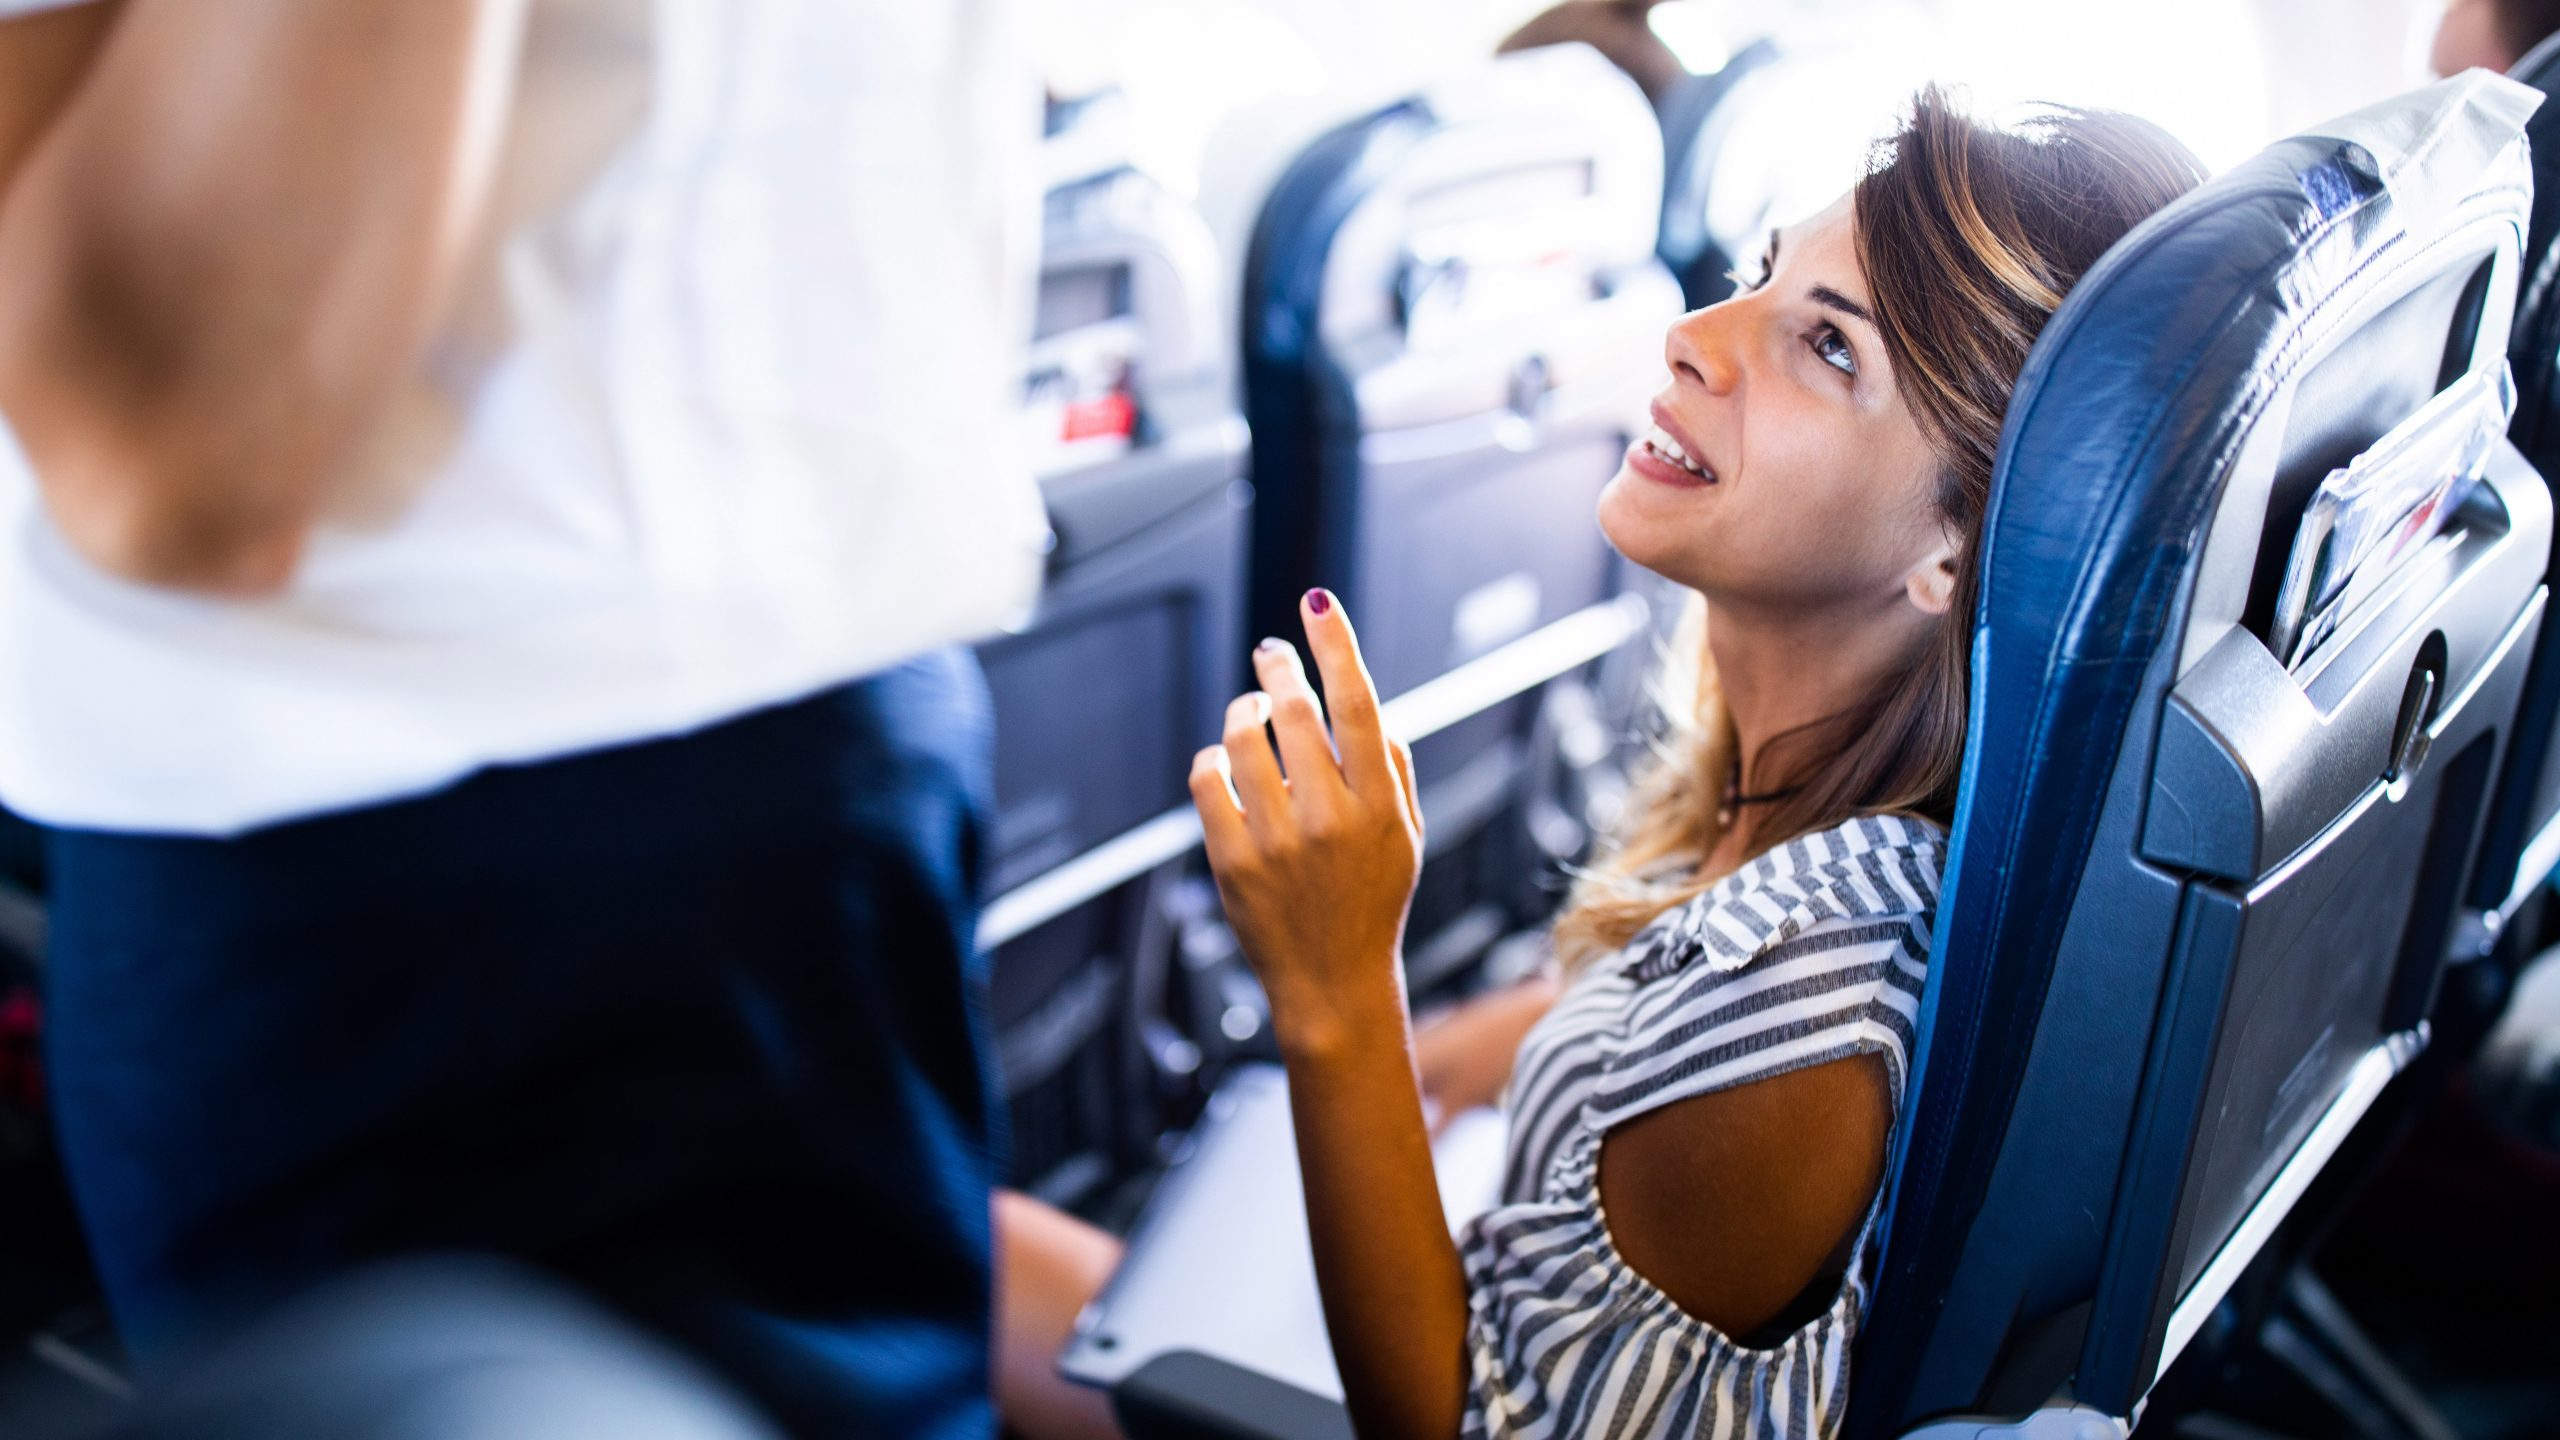 woman asking the flight attendant a question